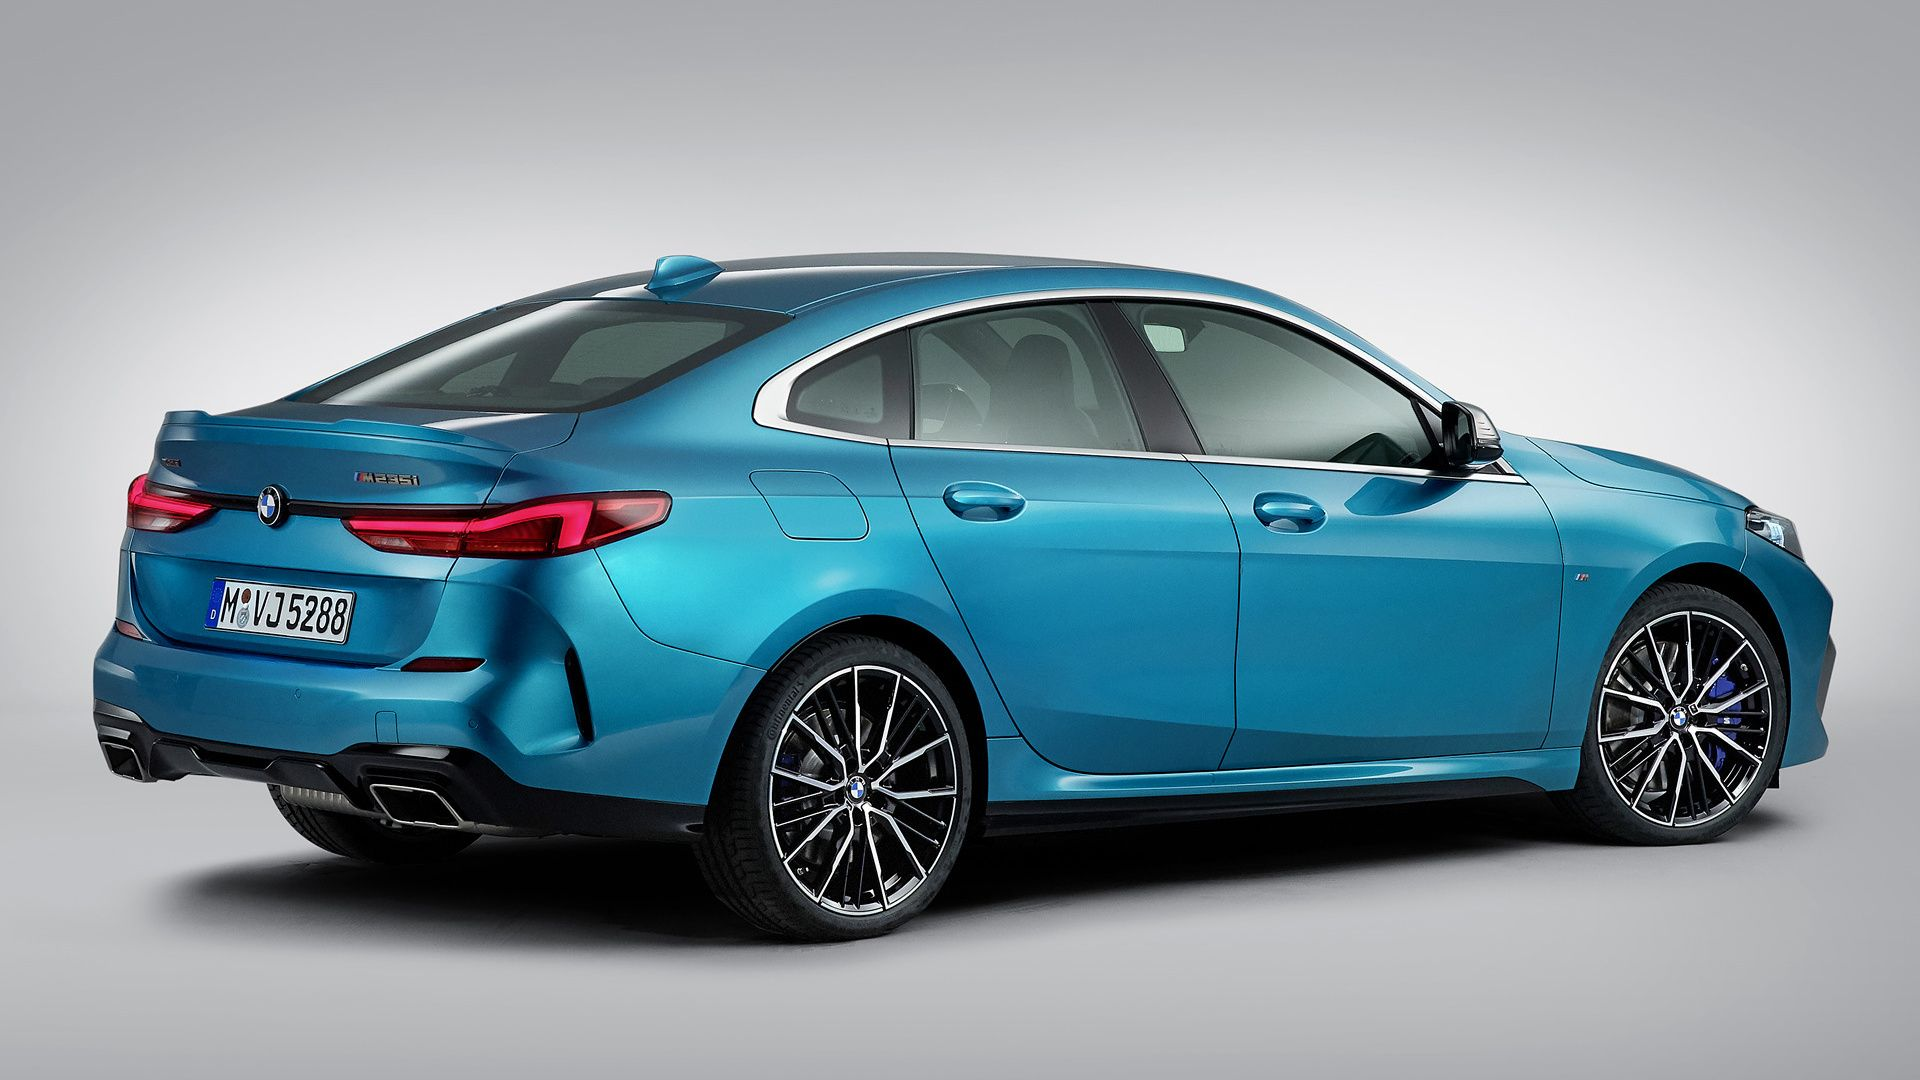 Vehicles Bmw M235i Gran Coupe Bmw Compact Car Luxury Car Blue Car Car Hd Wallpaper Background Imagess In 2020 Bmw Compact Bmw Gran Coupe